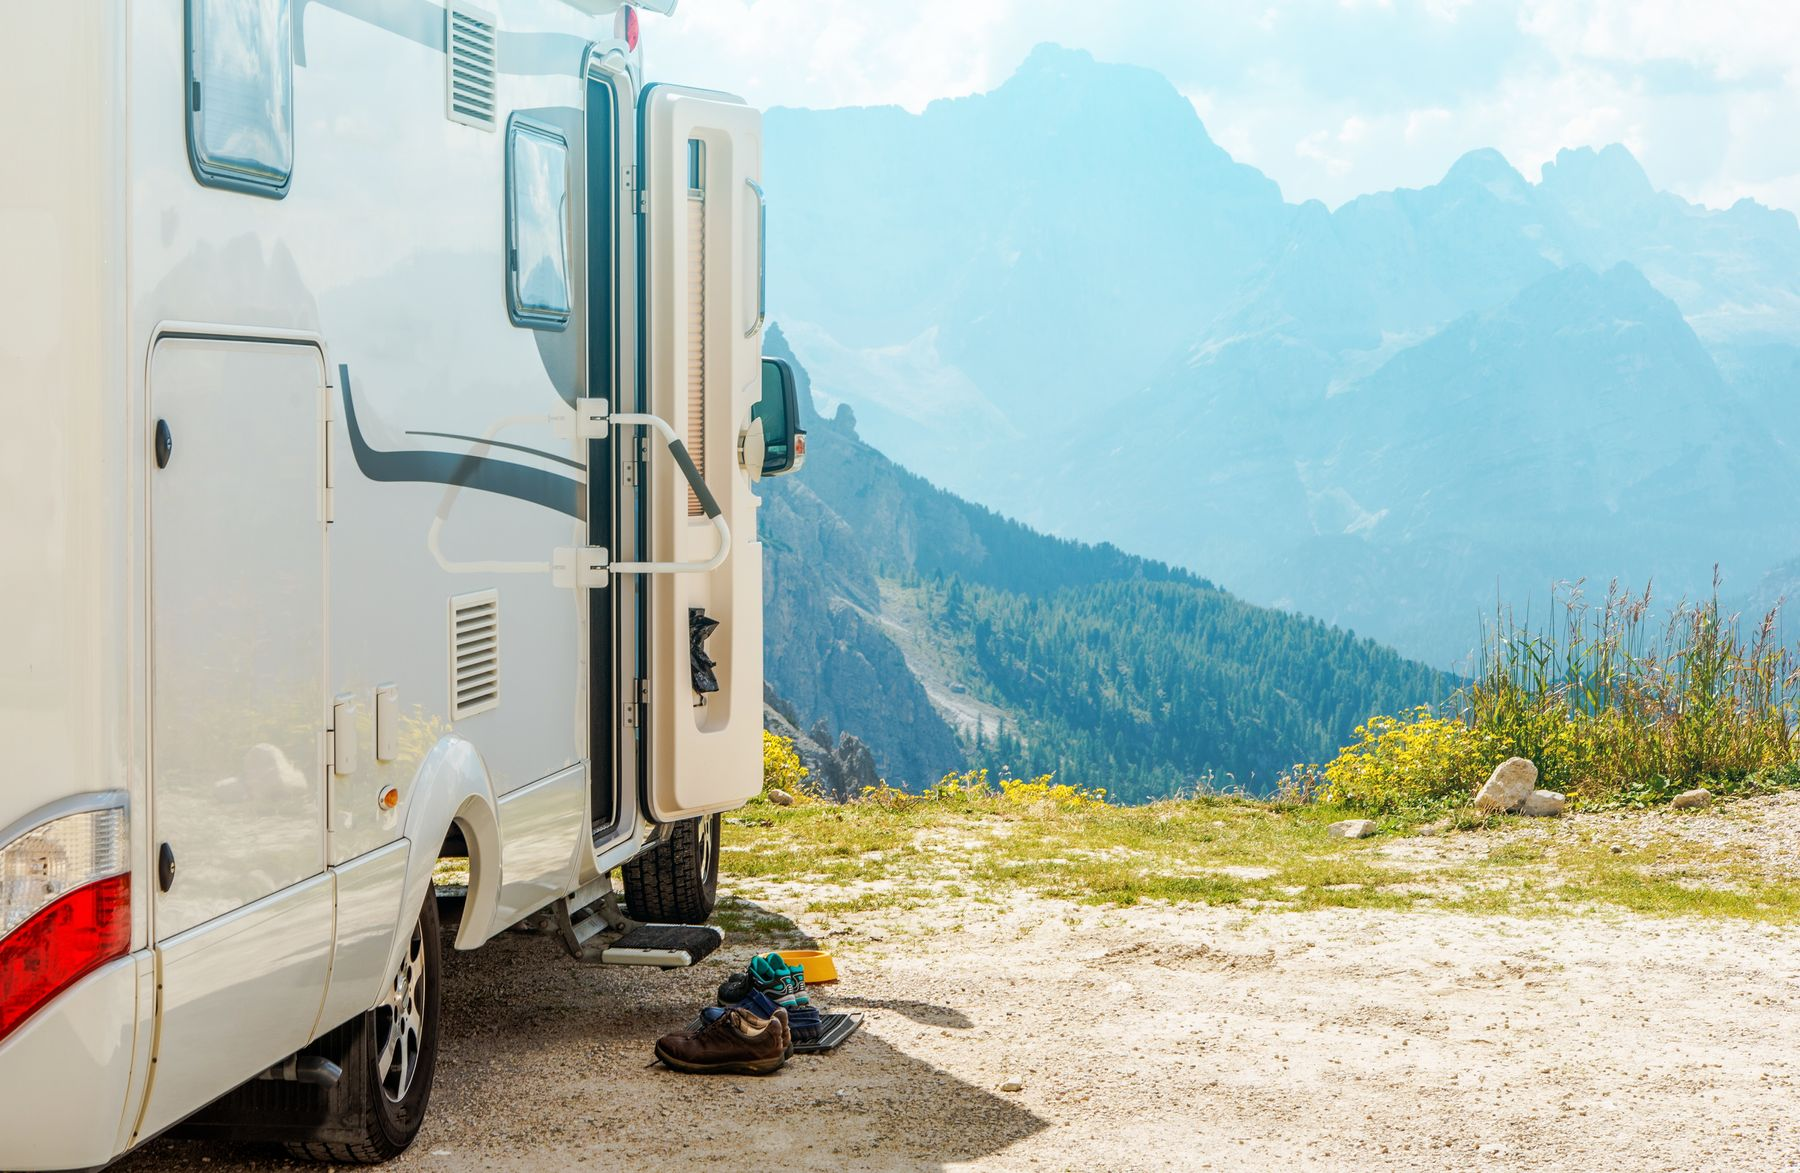 a camper trailer in front of the mountains